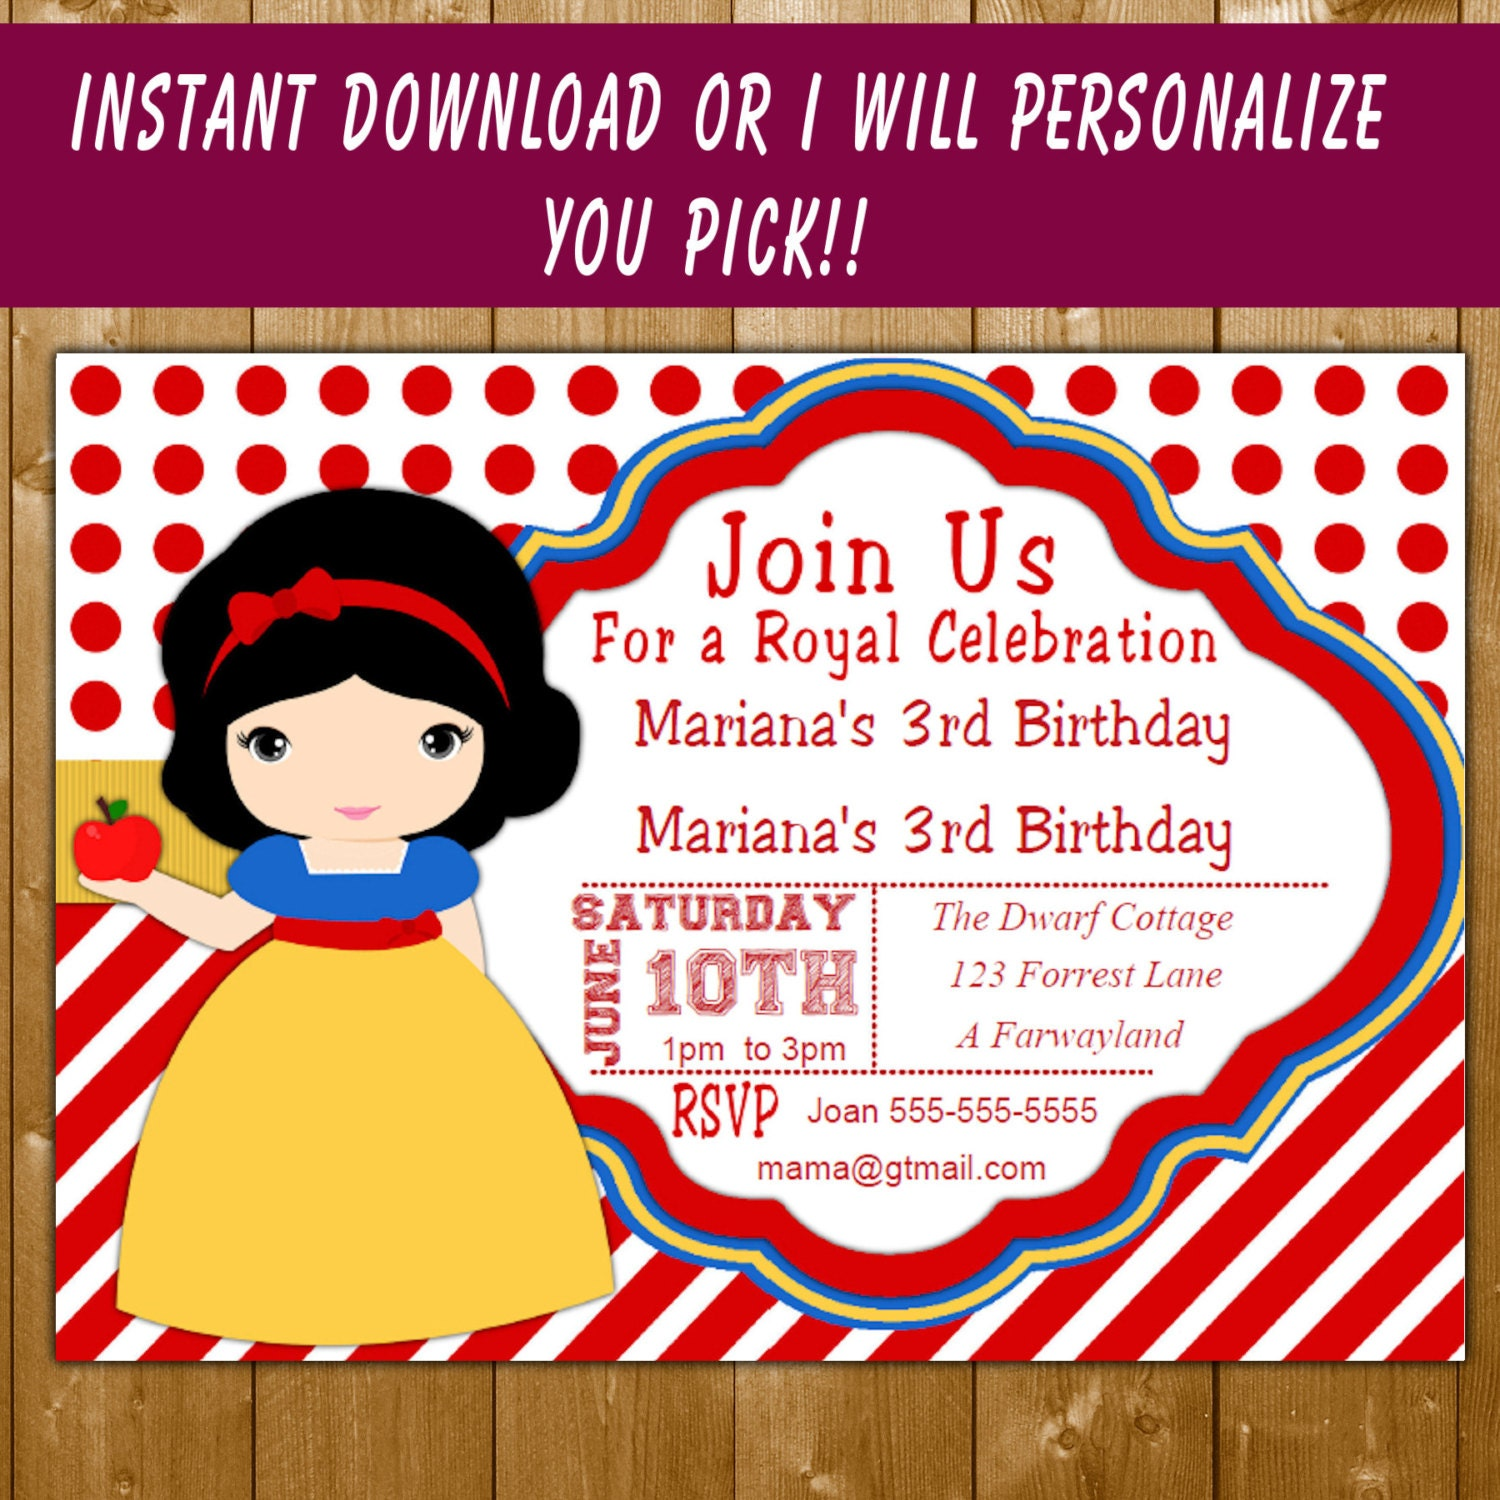 Tangled birthday funpartysupply snow white invitation instant download princess snow white party invitation birthday party invitation girl editable free thank you note filmwisefo